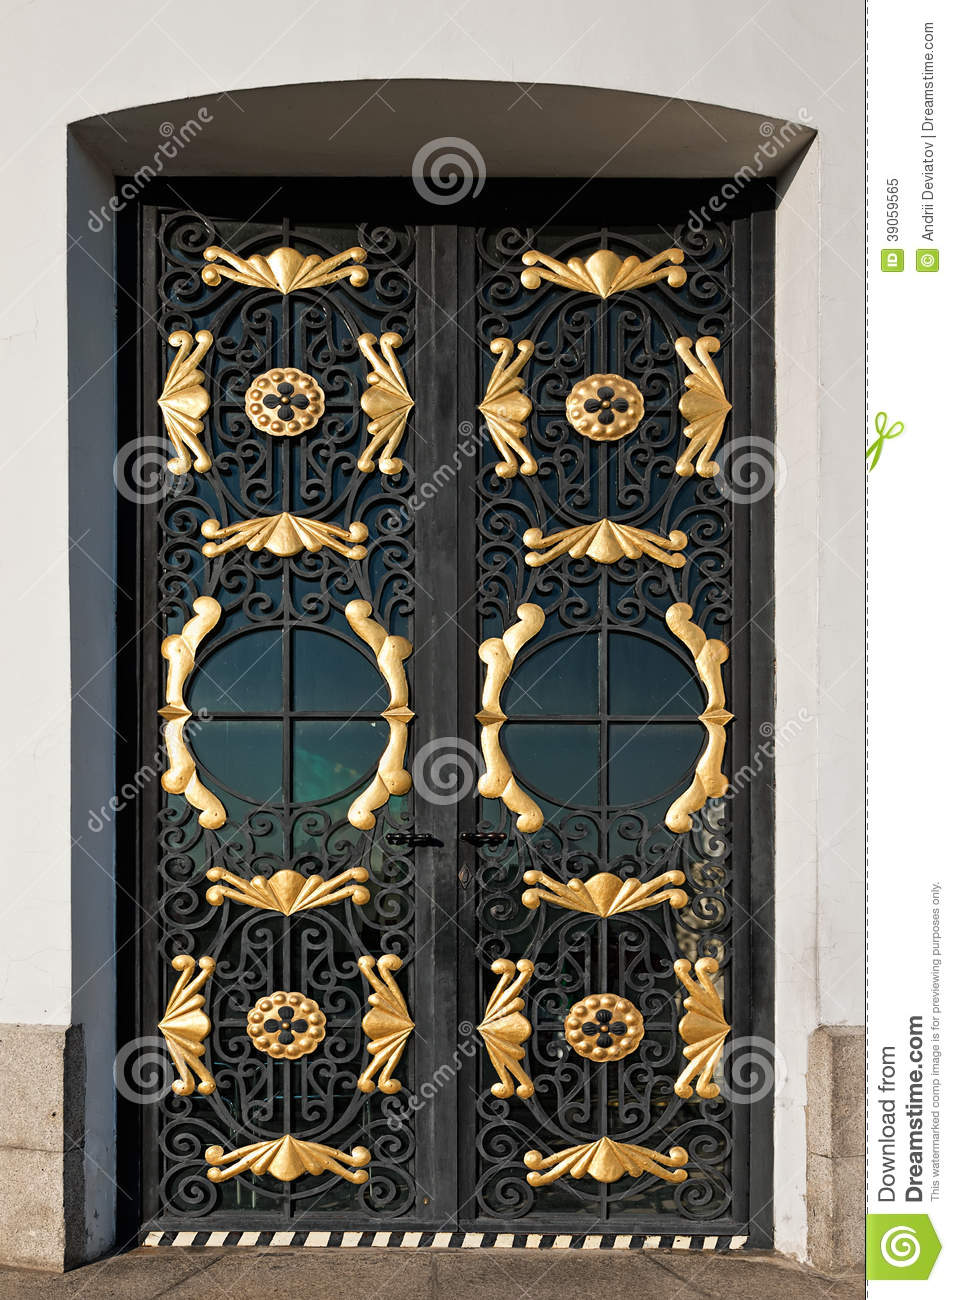 Closed Metal Door With Decorative Grille Stock Photo